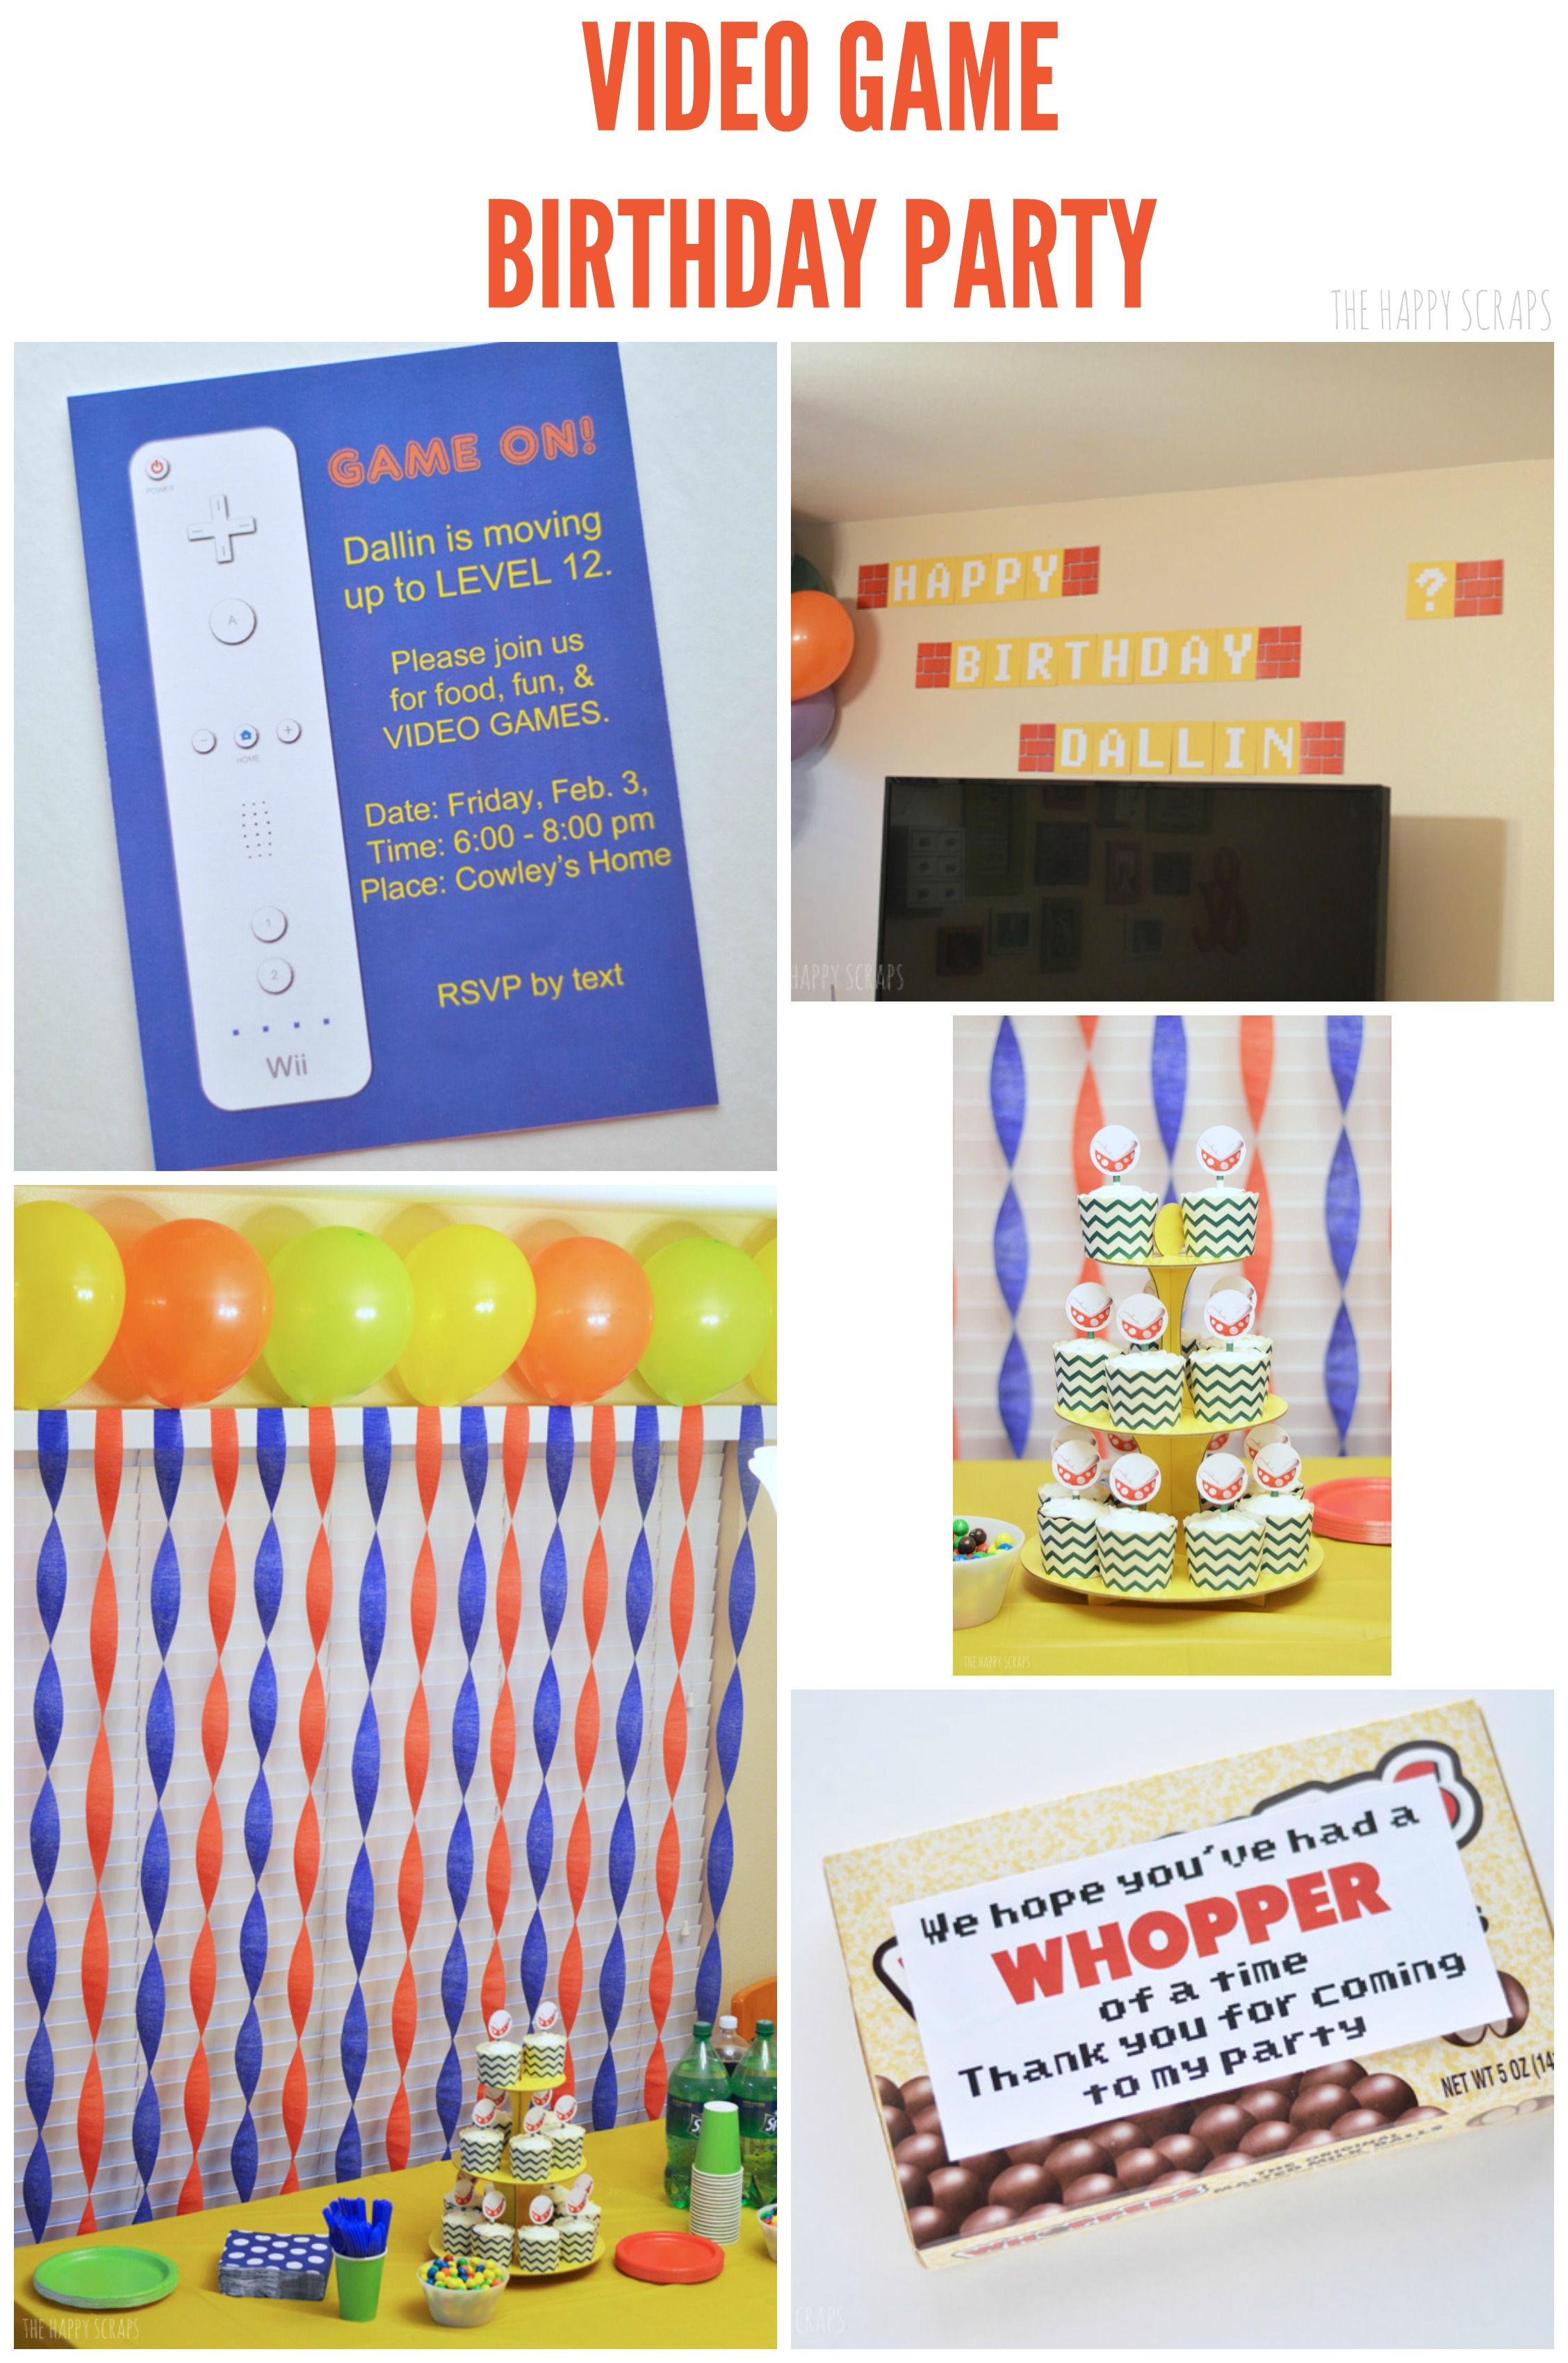 Putting together a Video Game Birthday Party doesn't have to be hard. Stop by to check out the easy ideas I'm sharing for putting one together.